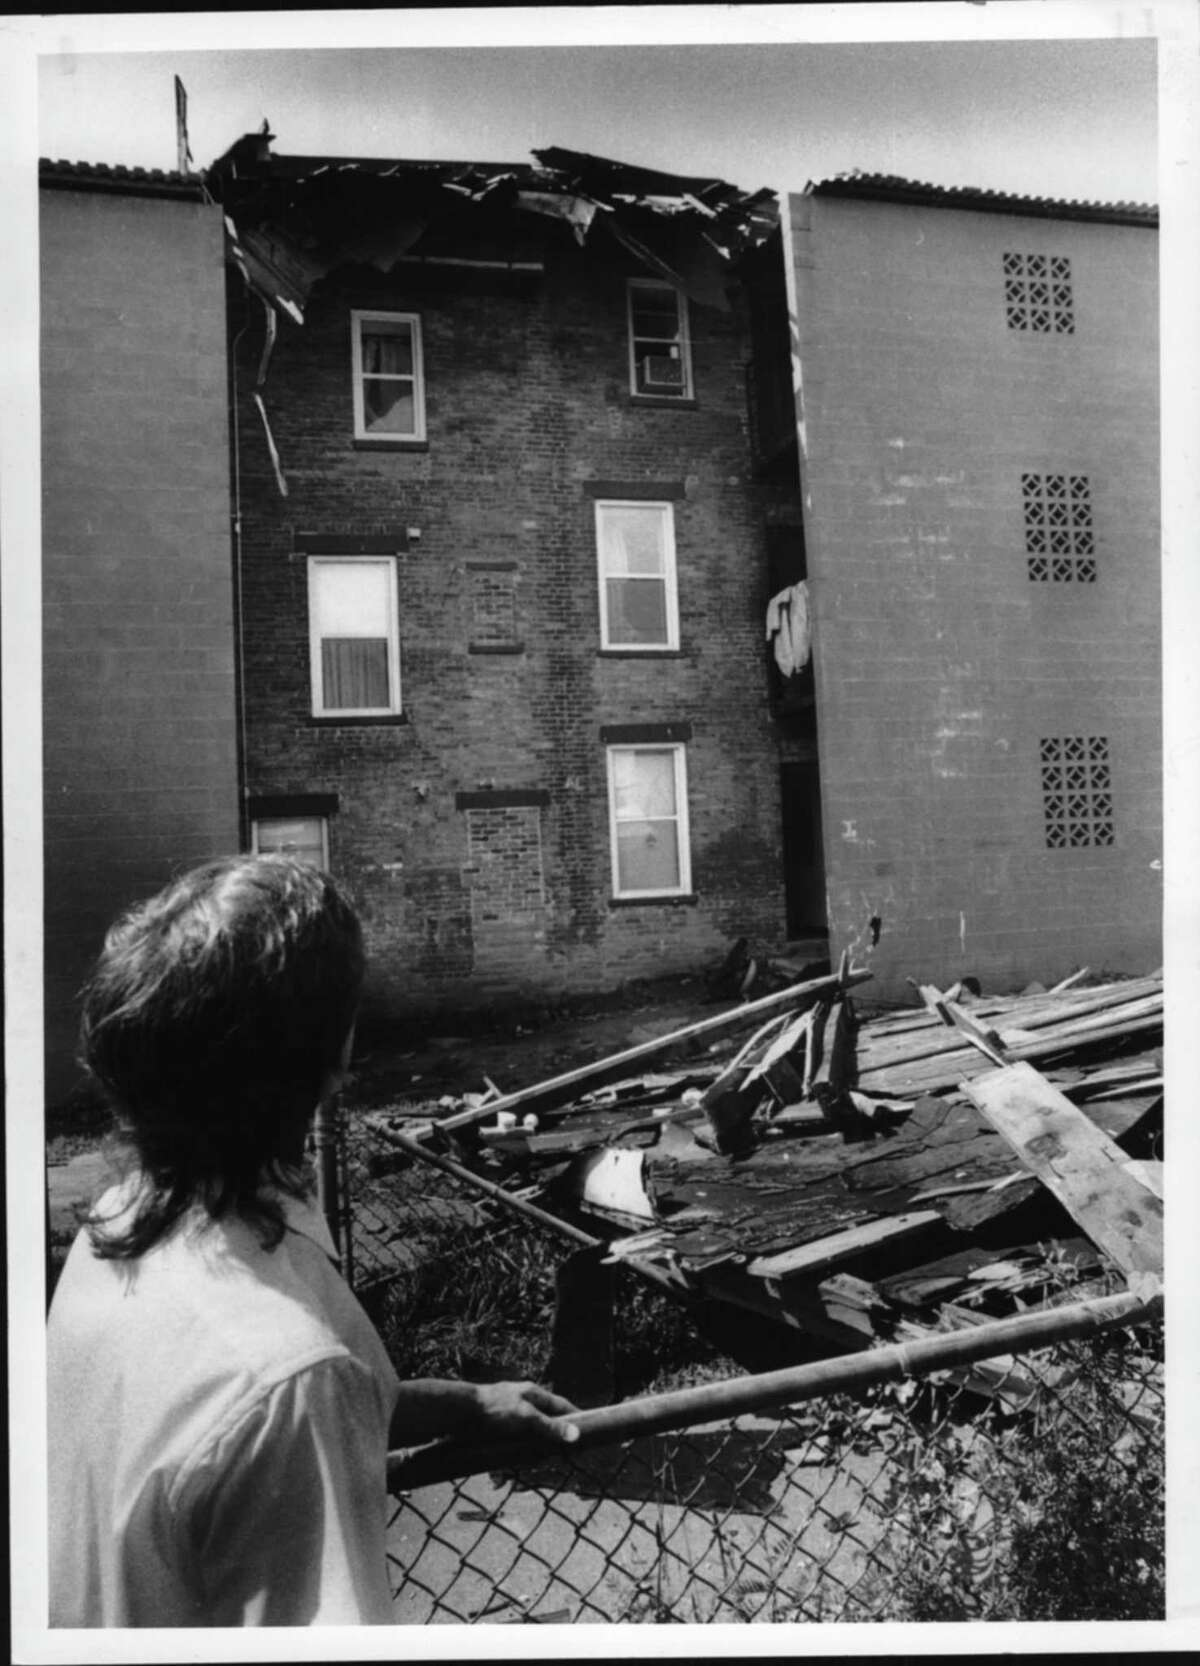 North Mohawk Avenue, Cohoes, New York - Arthur Murray of Cohoes, who lives directly behind the apartment building whose roof was blown off during Tuesday night's storm, looks at the debris on the roof and also in the backyard of the apartment building. August 29, 1990 (Paul D. Kniskern, Sr./Times Union Archive)